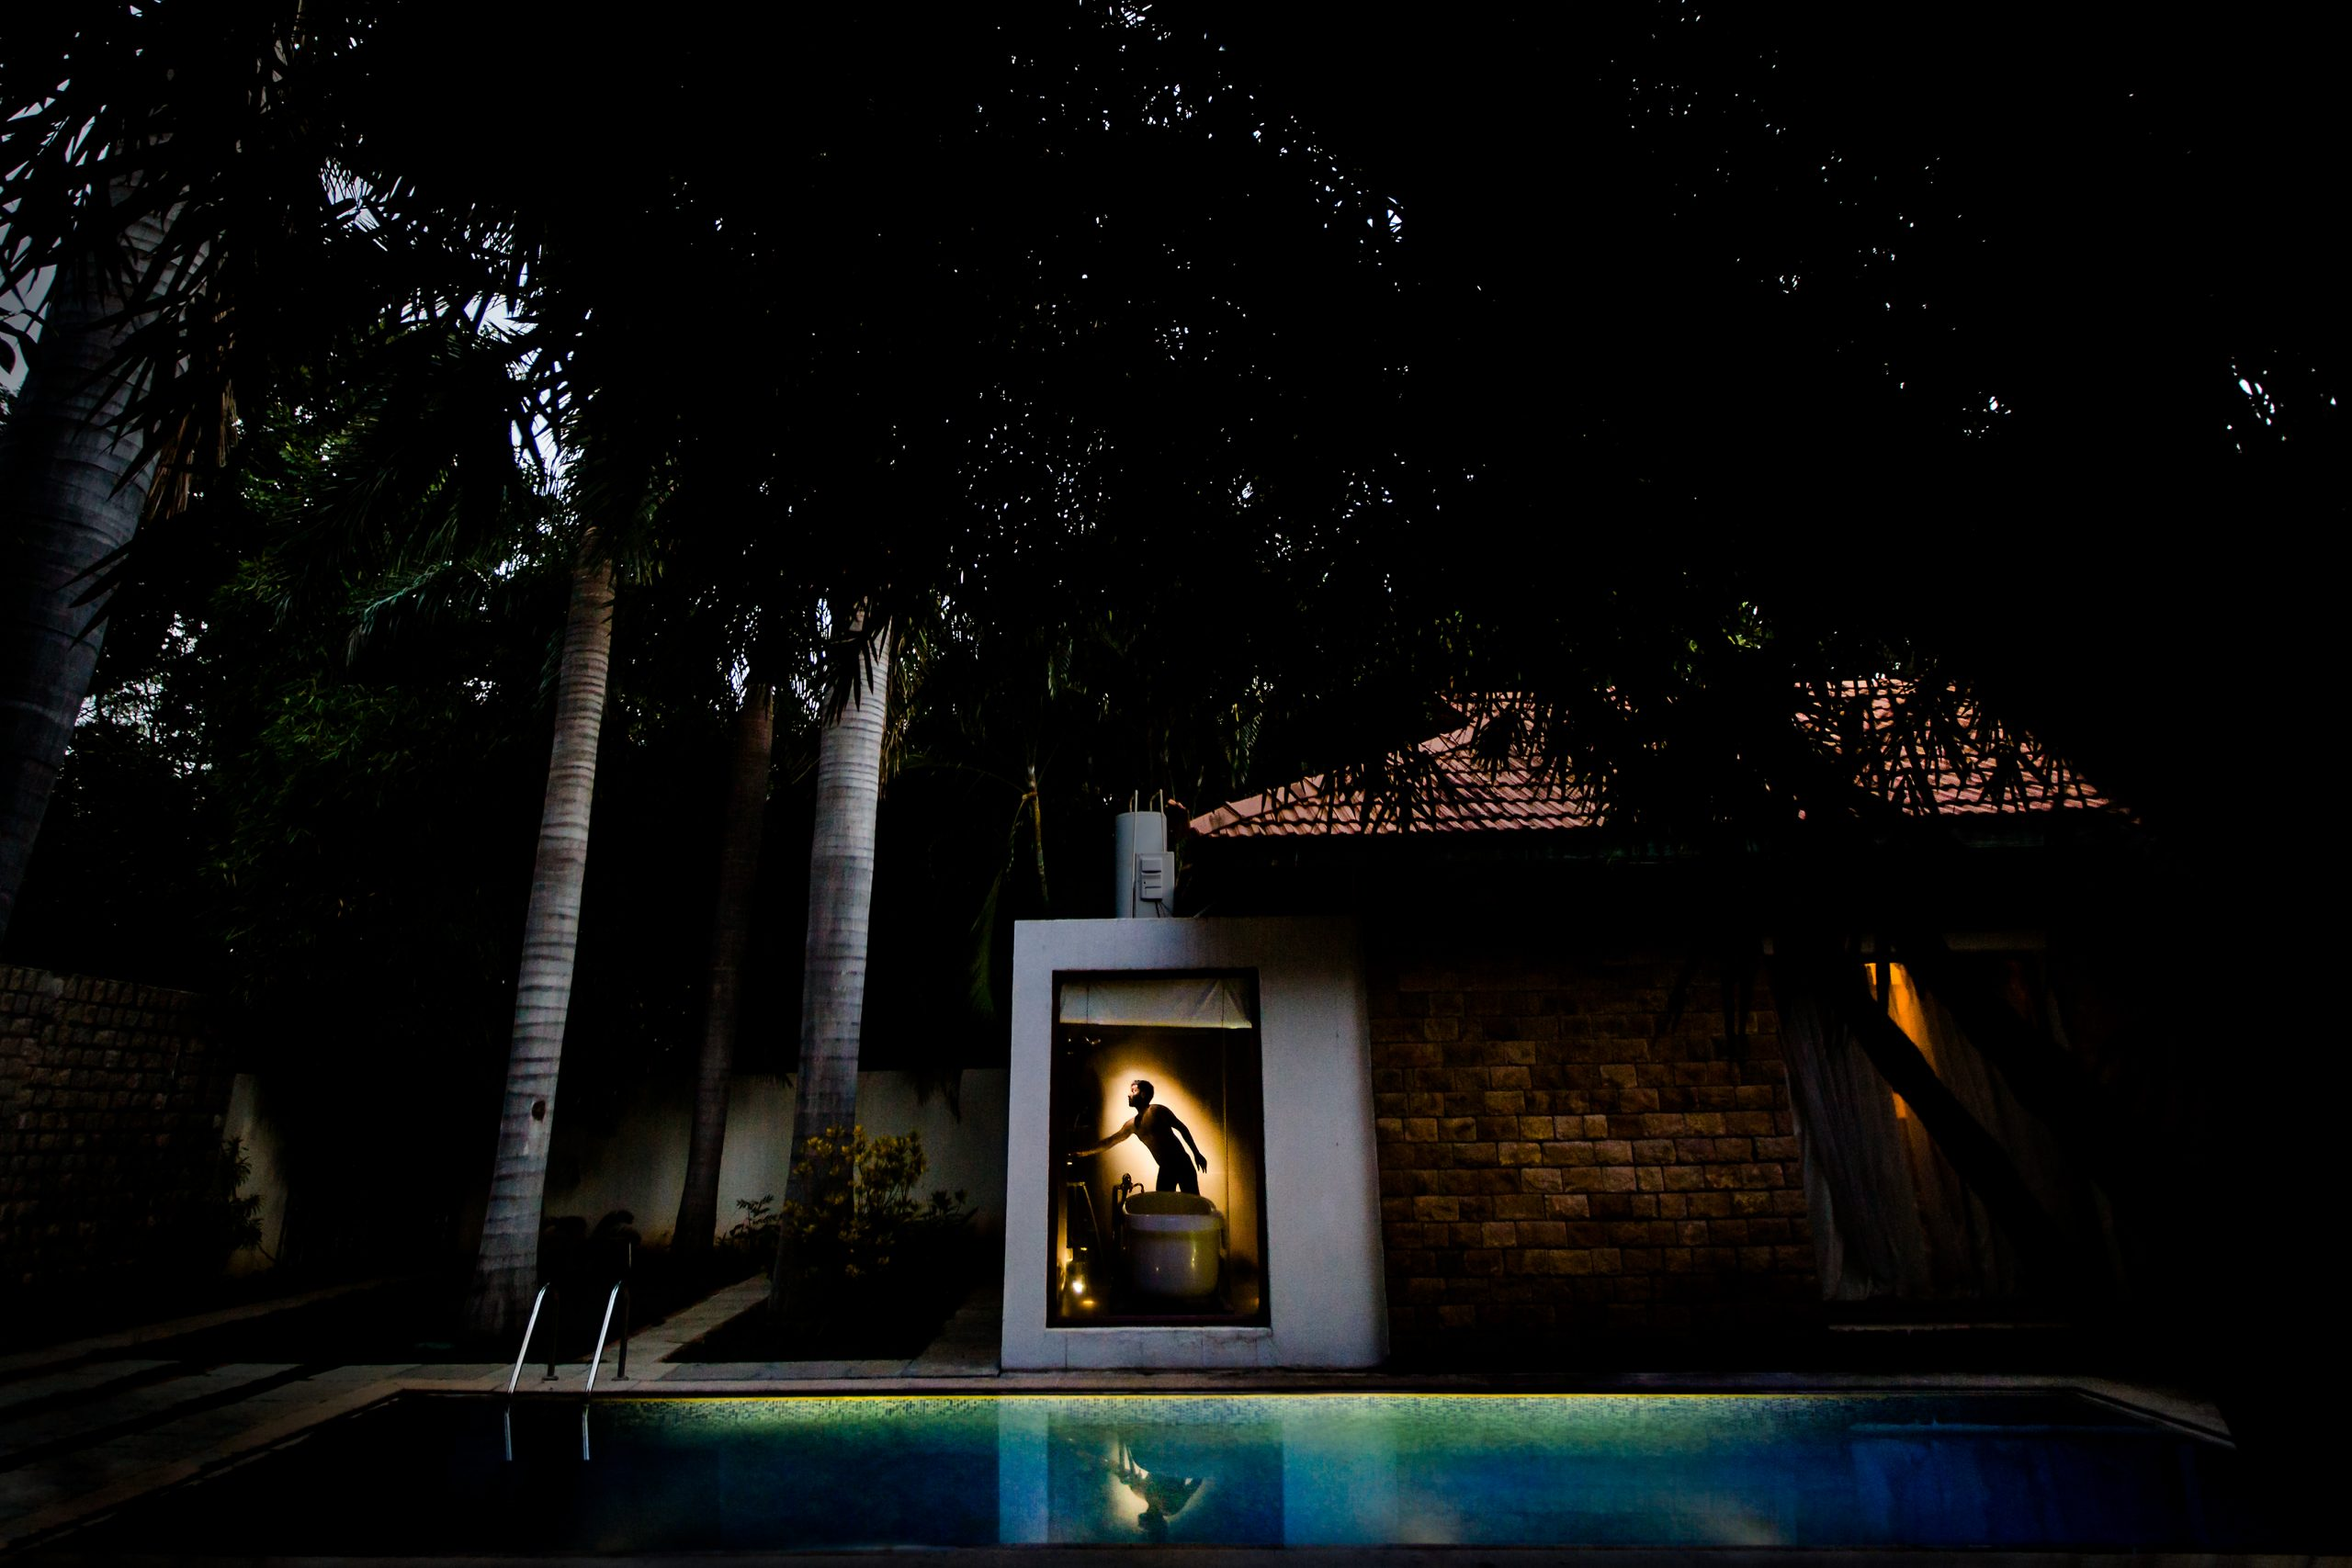 Groom is seen illuminated in the washroom of pool side house